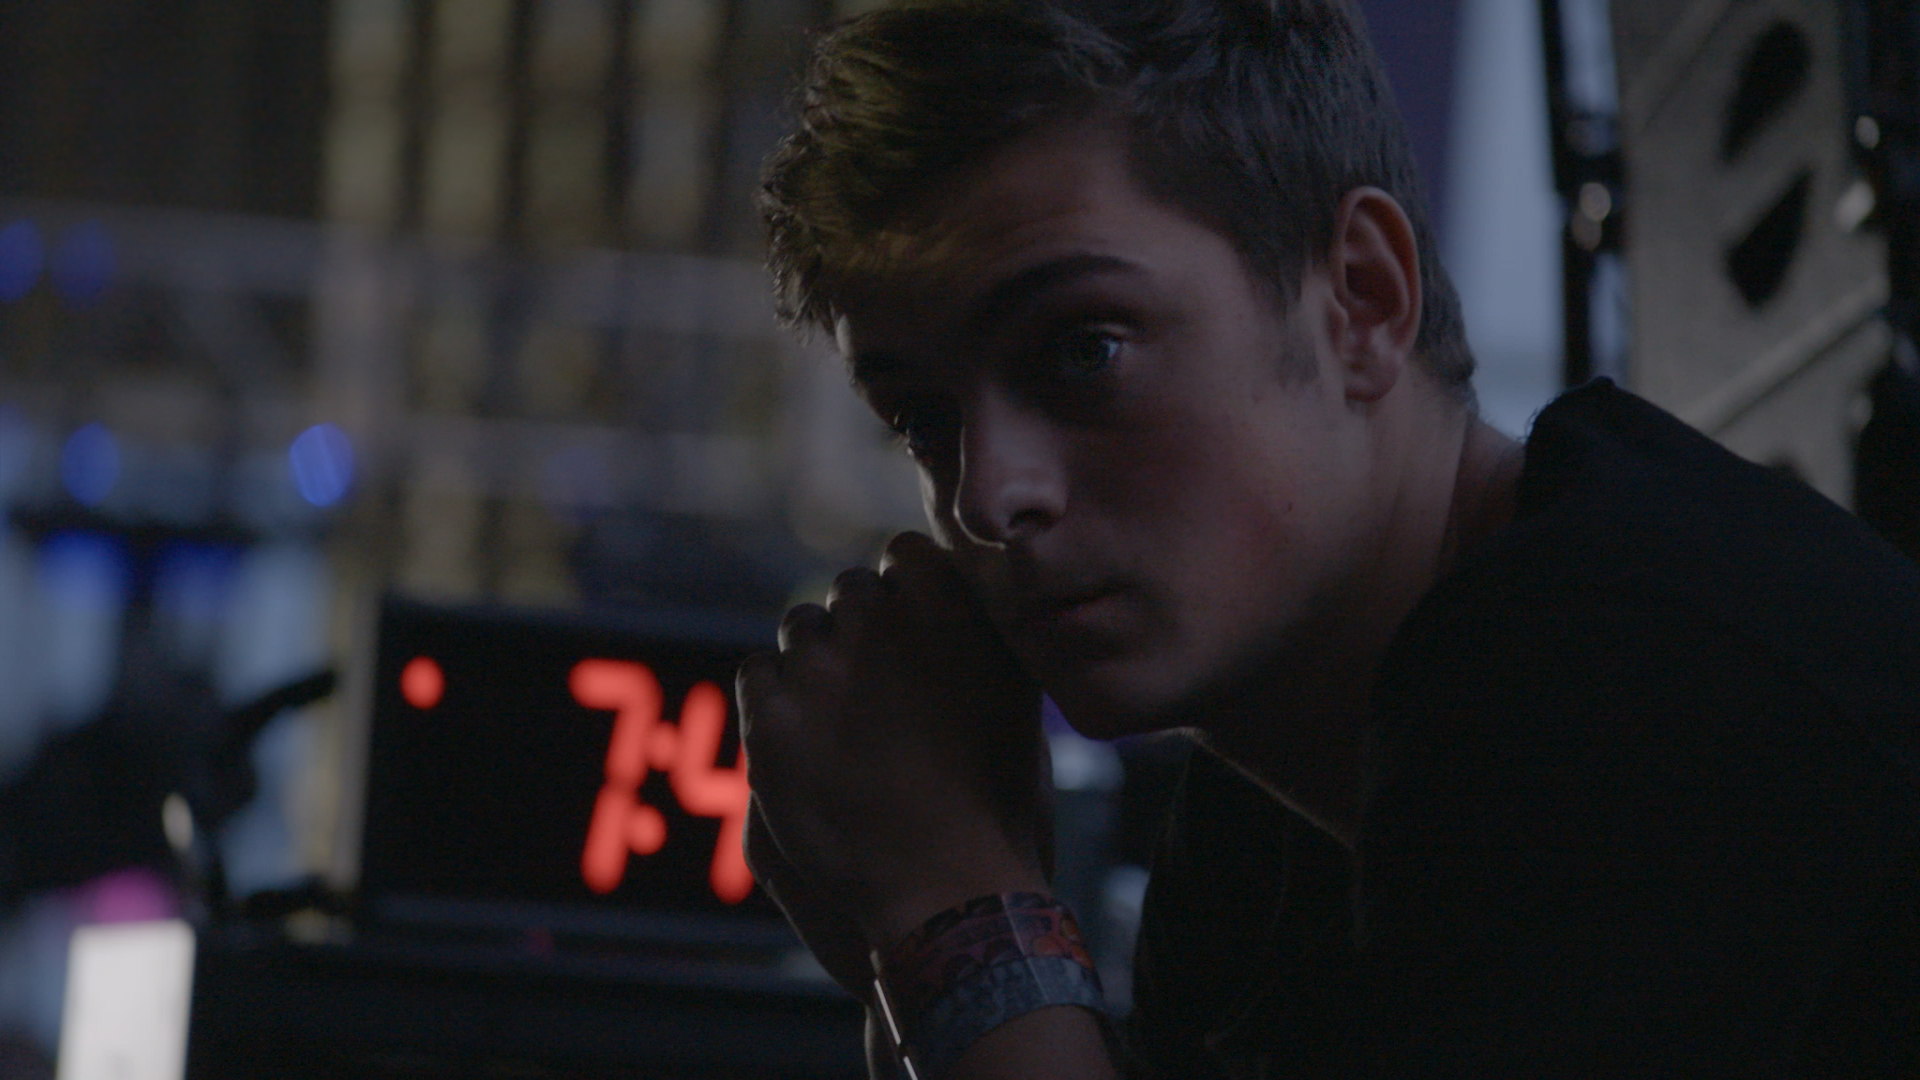 Martin Garrix before taking the mainstage at Ultra for the first time in WHAT WE STARTED - (c) Bert Marcus Productions